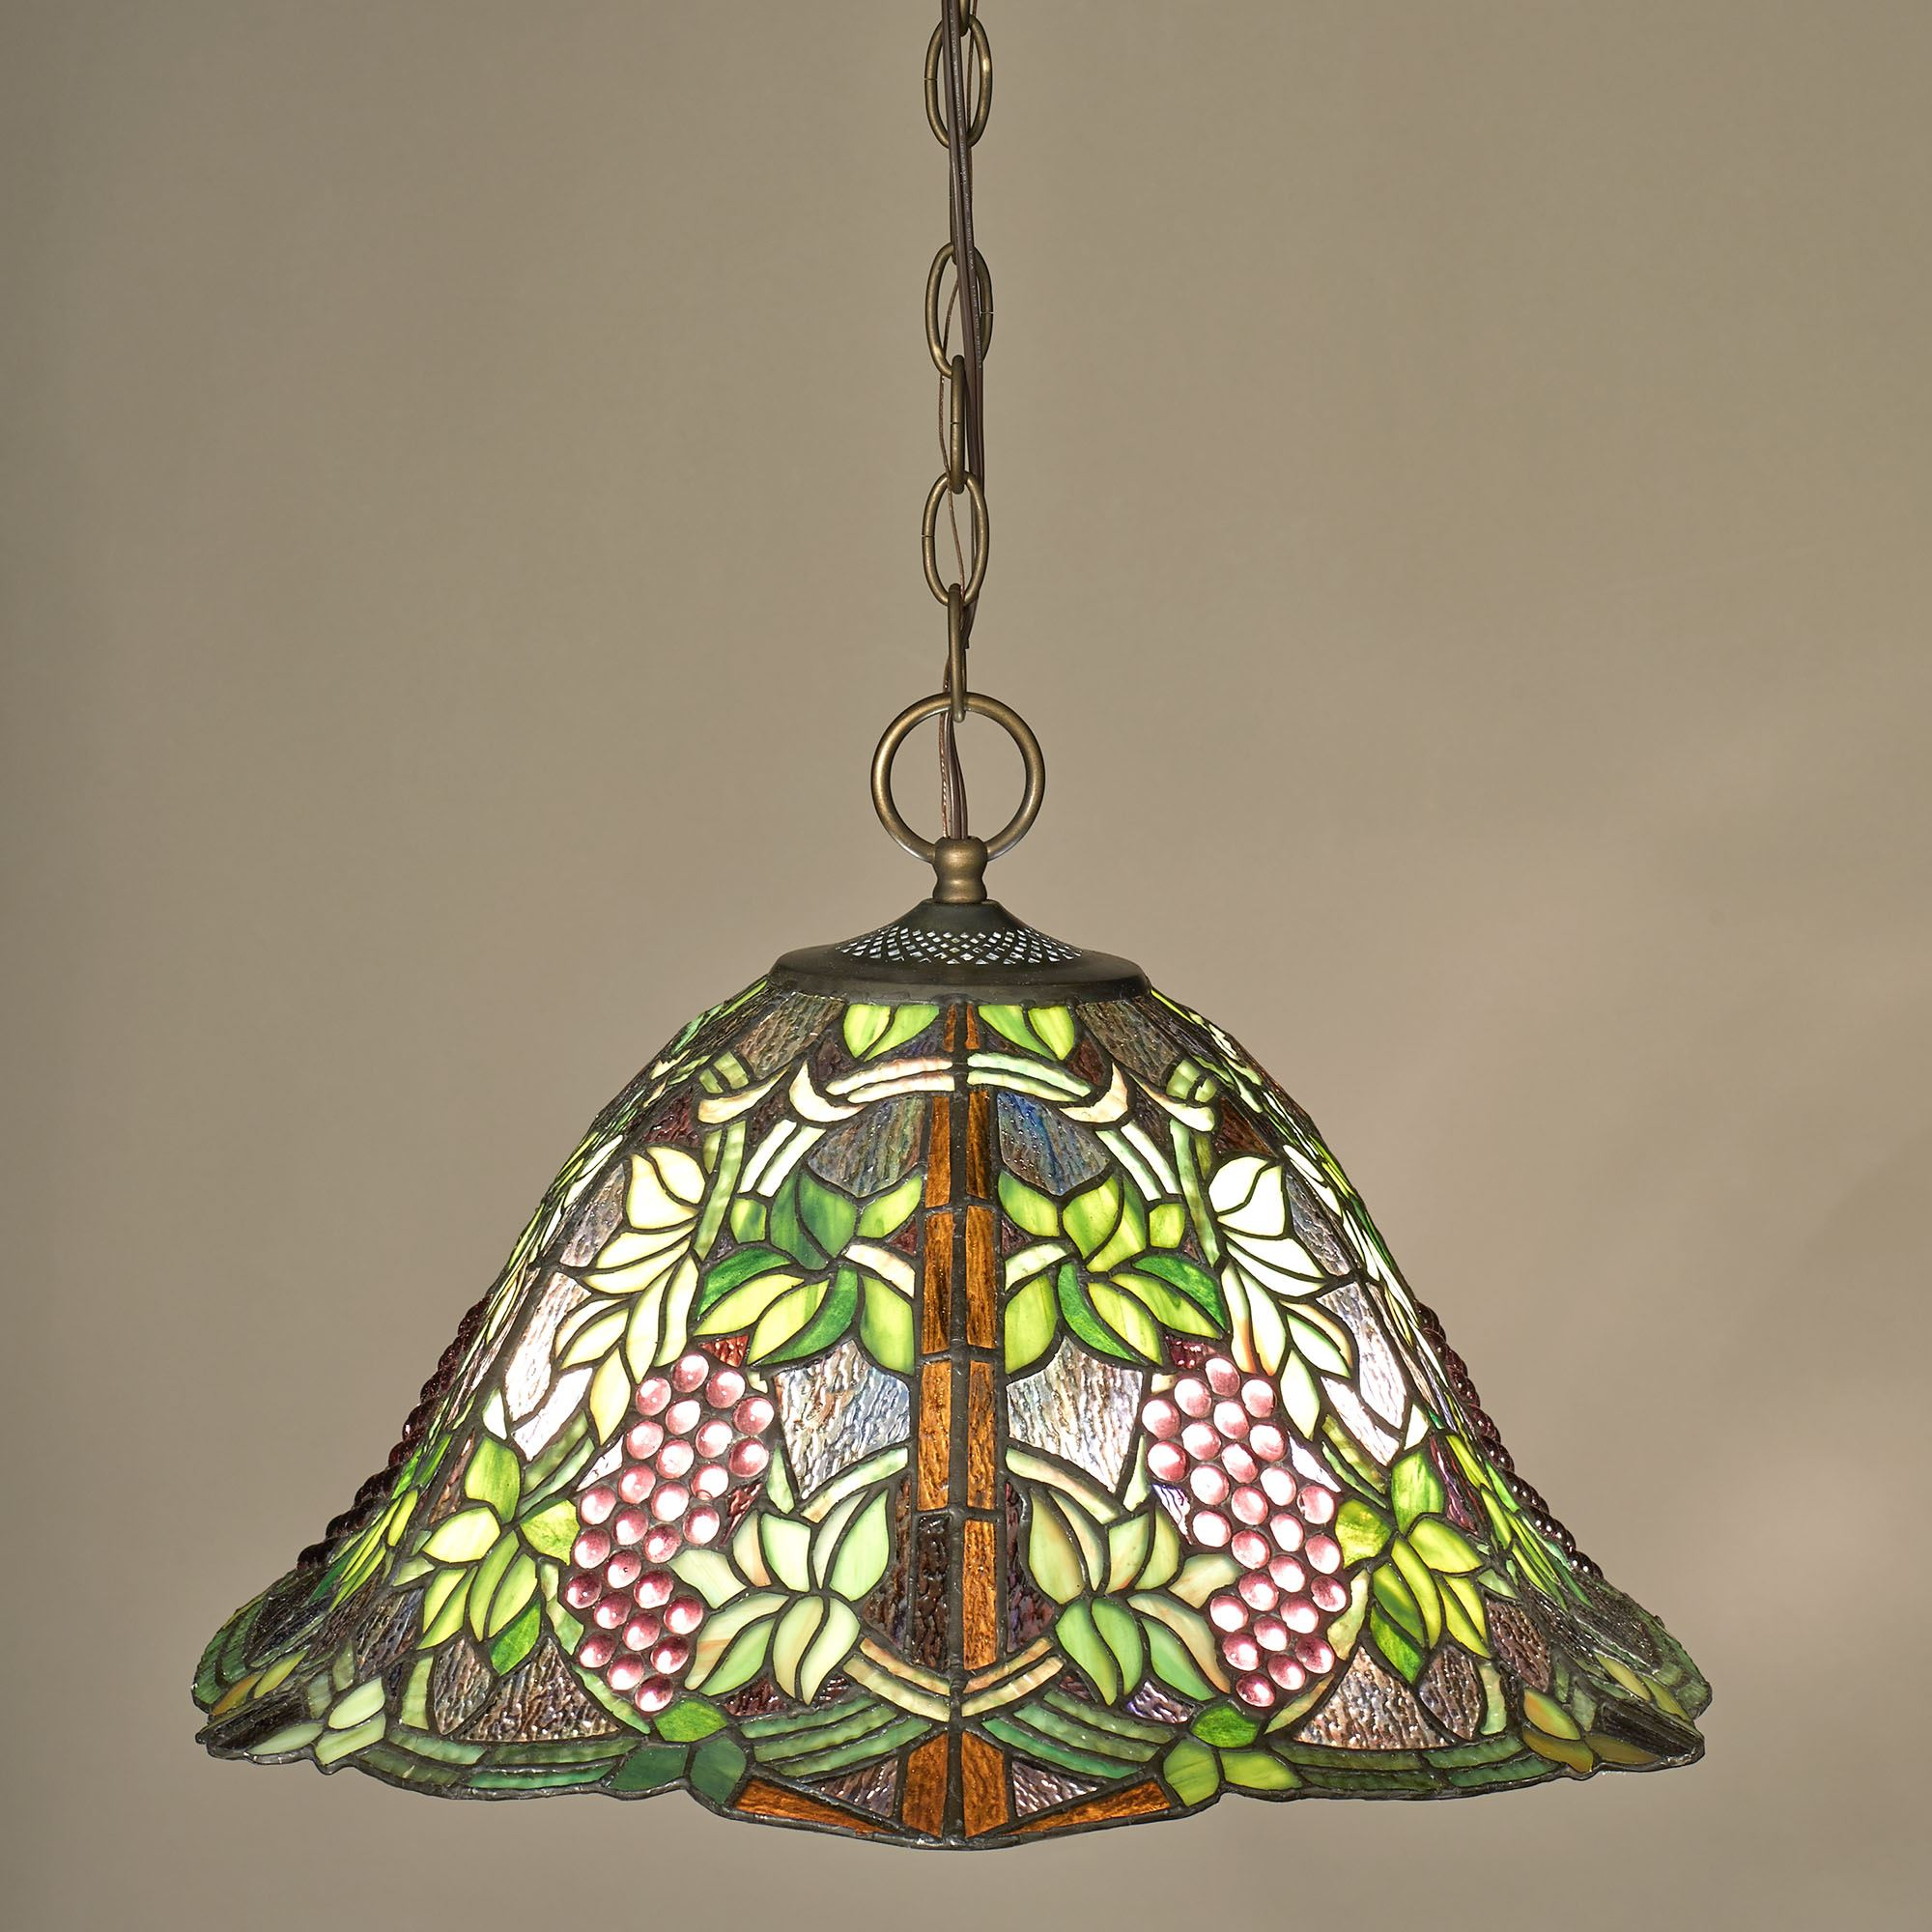 dining lights retro hanging pendant item in lamp new european shell living stained tiffany glass from light room lighting fixture